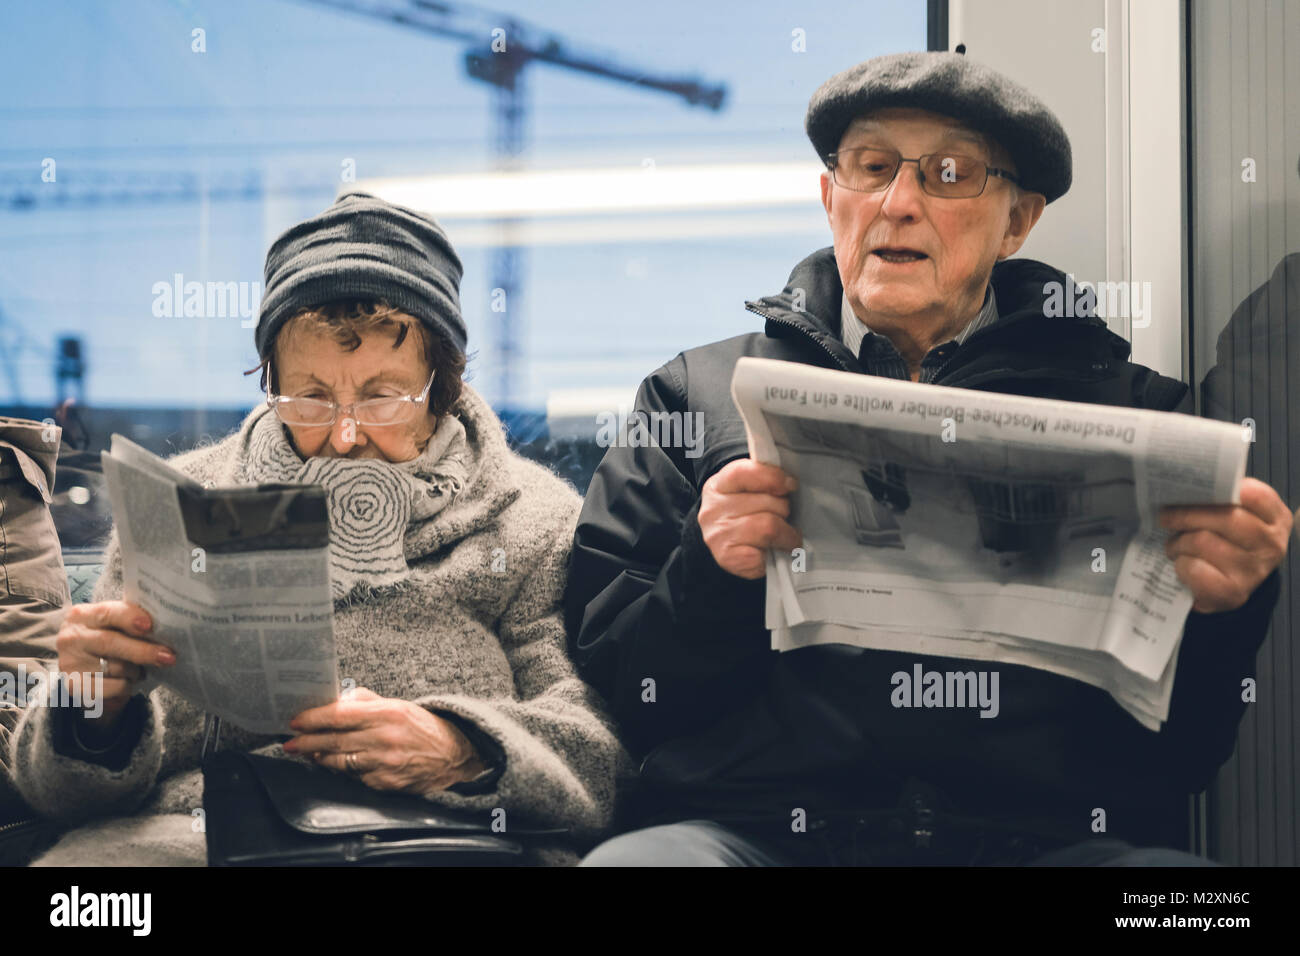 Elderly couple reading the newspaper on the S-Bahn, Berlin. - Stock Image